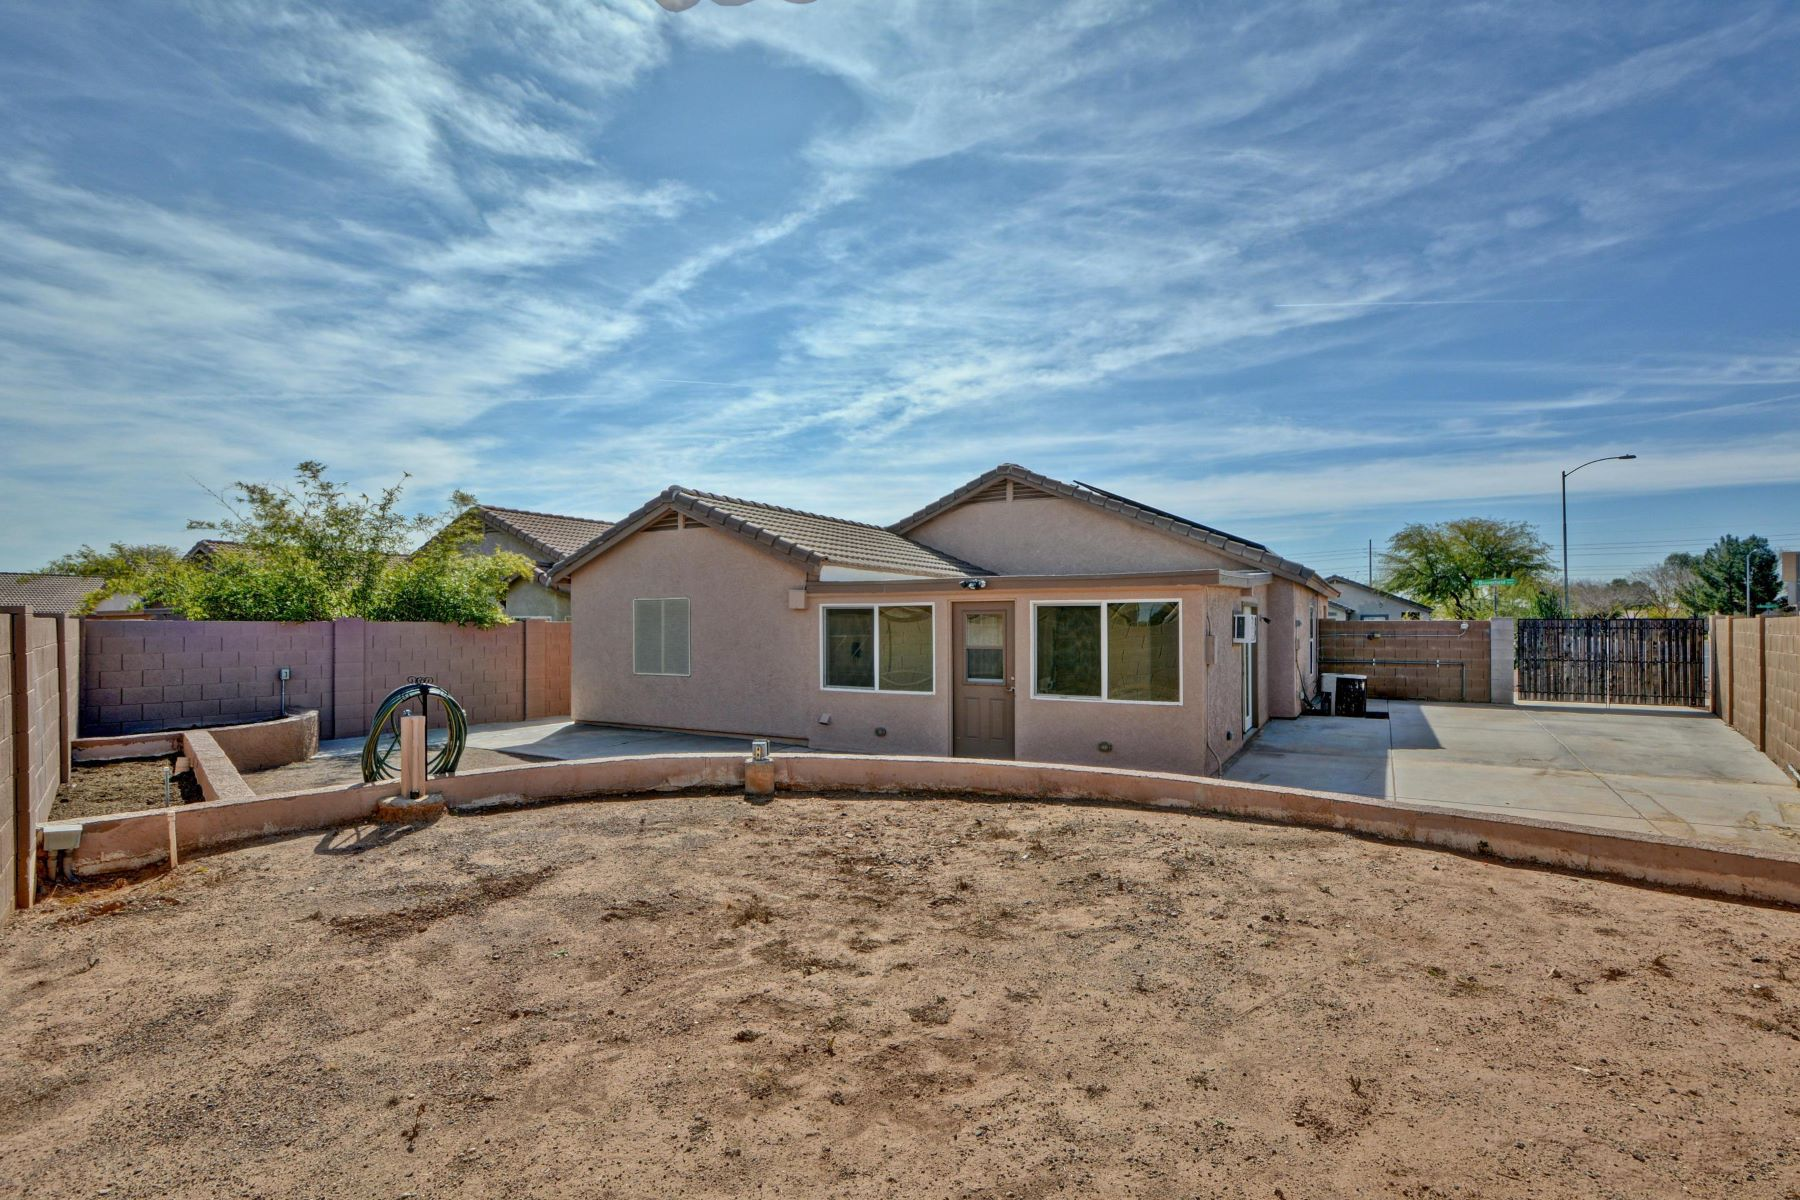 Single Family Homes for Active at Parque Verde 12654 W BLOOMFIELD RD El Mirage, Arizona 85335 United States